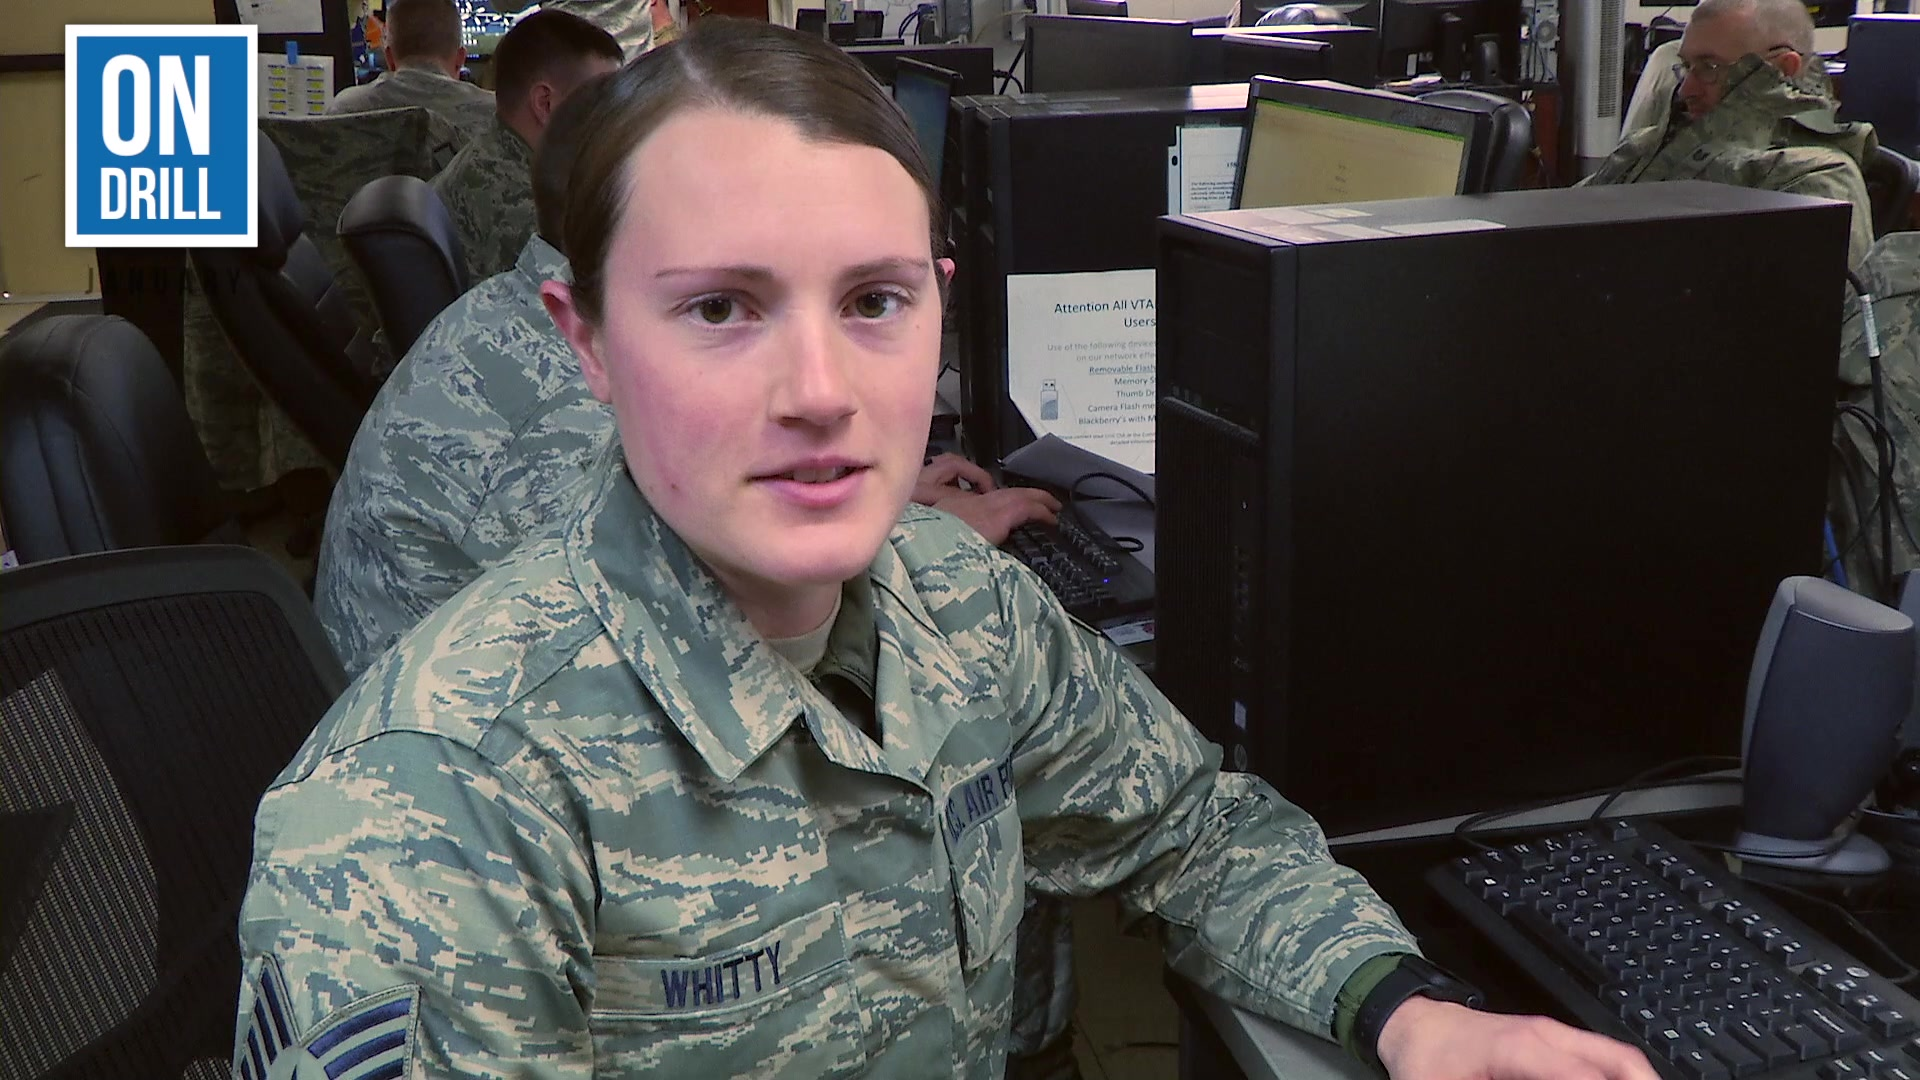 """Check out the January edition of our news series called """"On Drill."""" It provides highlights of what the 158th Fighter Wing, Vermont Air National Guard accomplished over a drill weekend. This drill, we asked Airman about what they are looking forward to in 2019."""